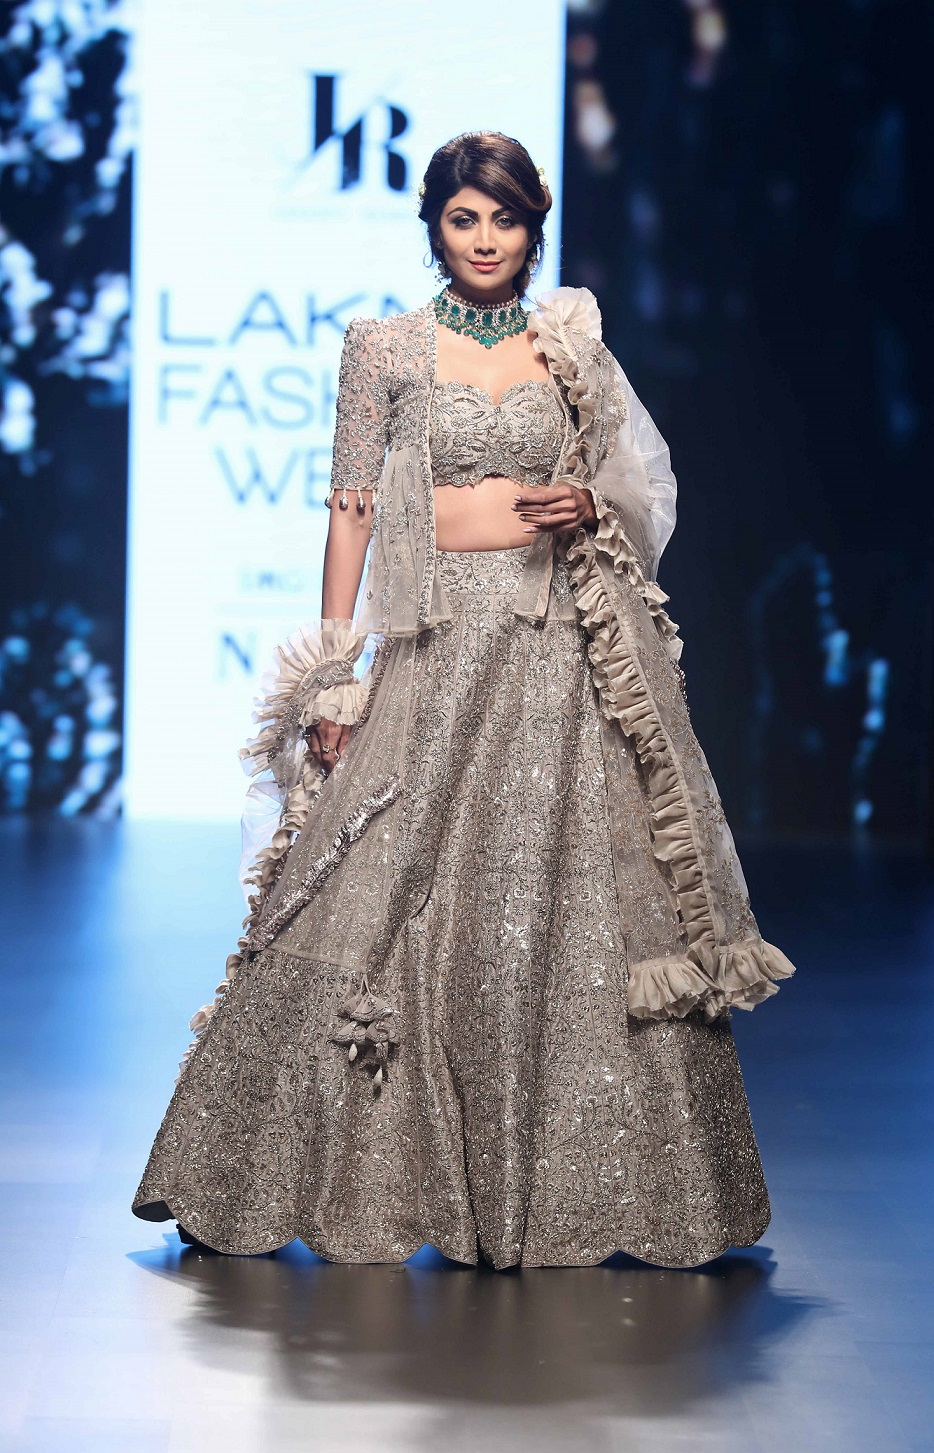 Showstopper Shilpa Shetty for Jayanti Reddy's collection Life in Monochrome at Lakme Fashion Week Summer Resort 2018